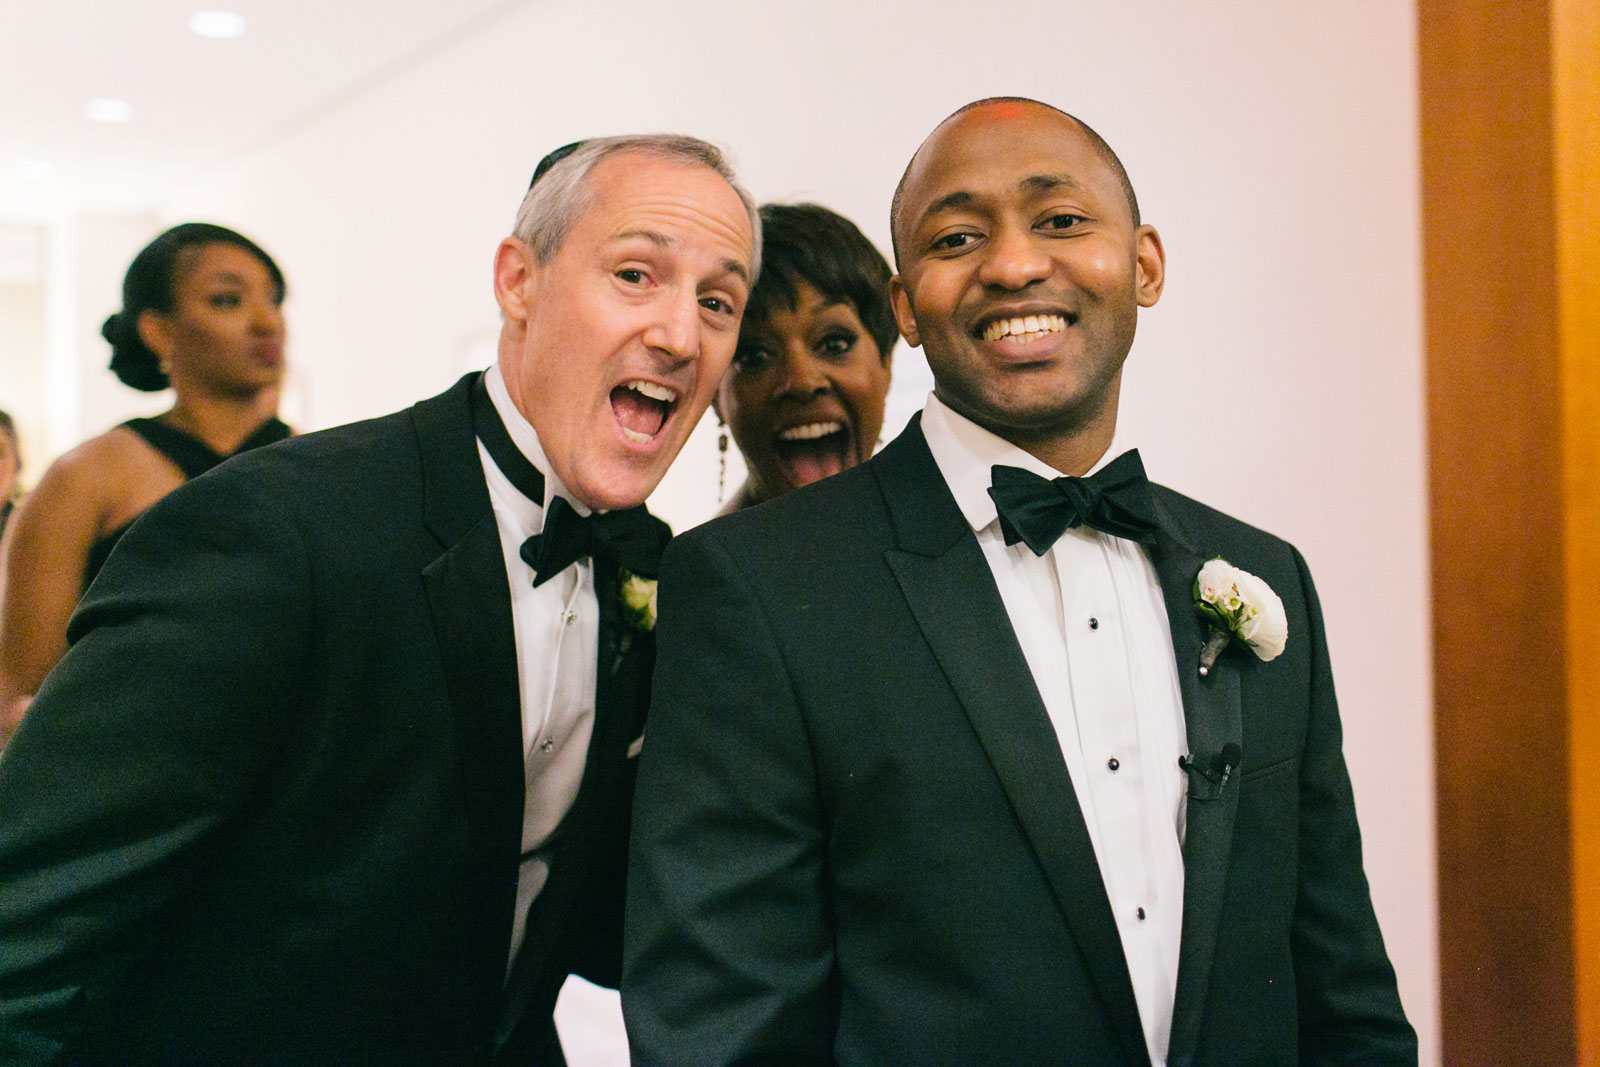 Groom and in-laws laughing excitedly as they walk into ceremony at Ritz-Carlton